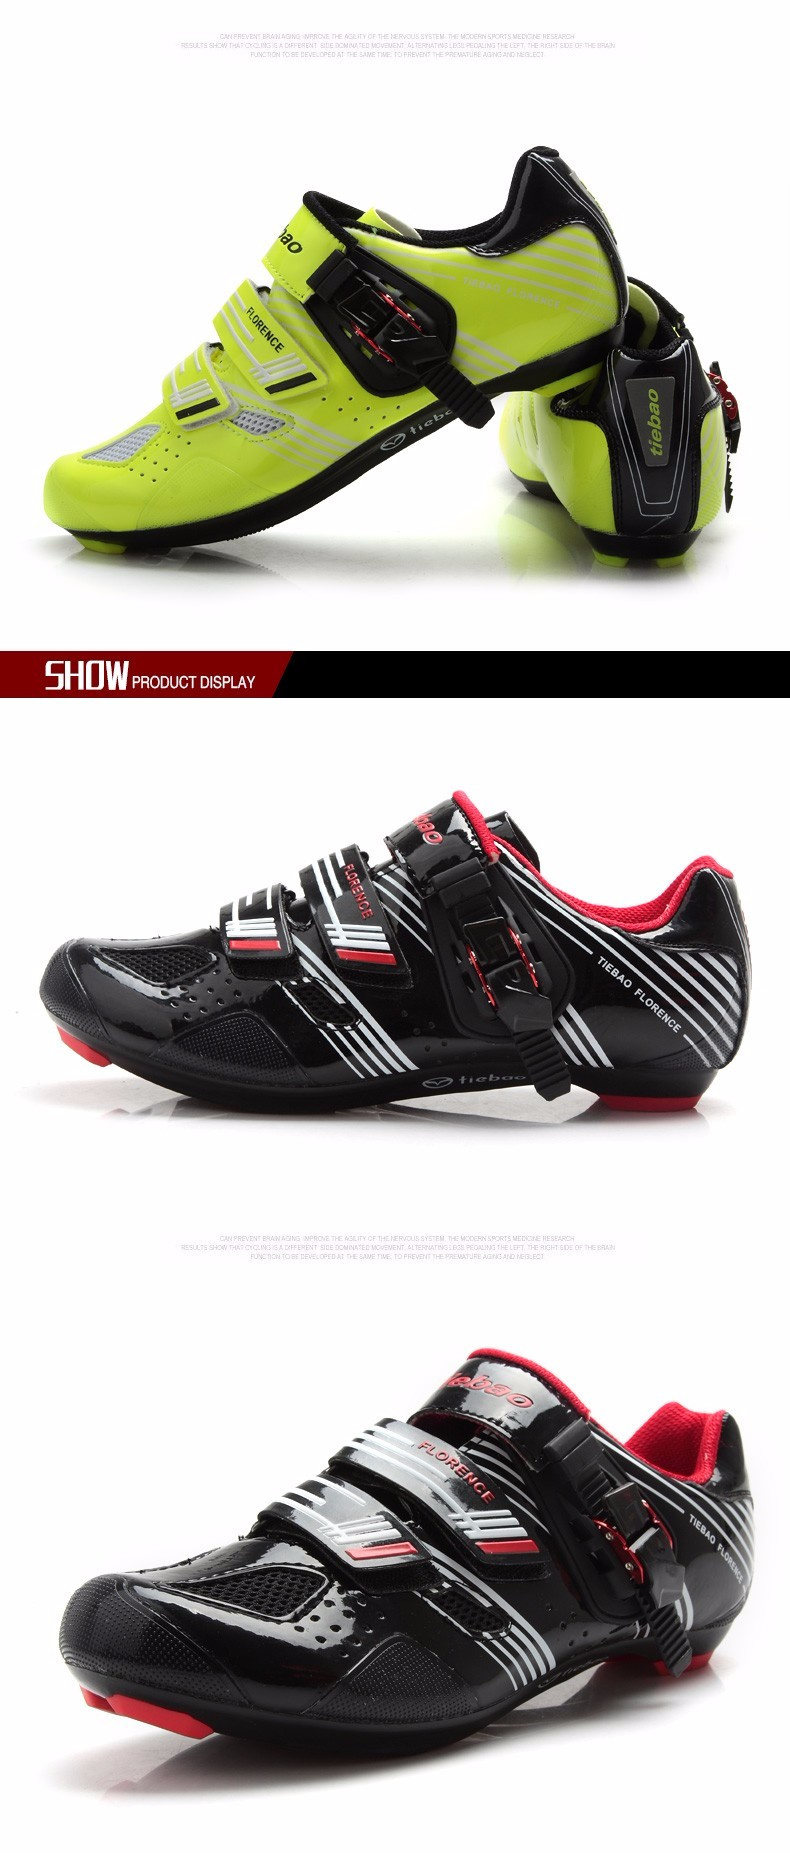 2016 TIEBAO NEW ROAD SHOES BIKE SHOES WITH BUCKLE